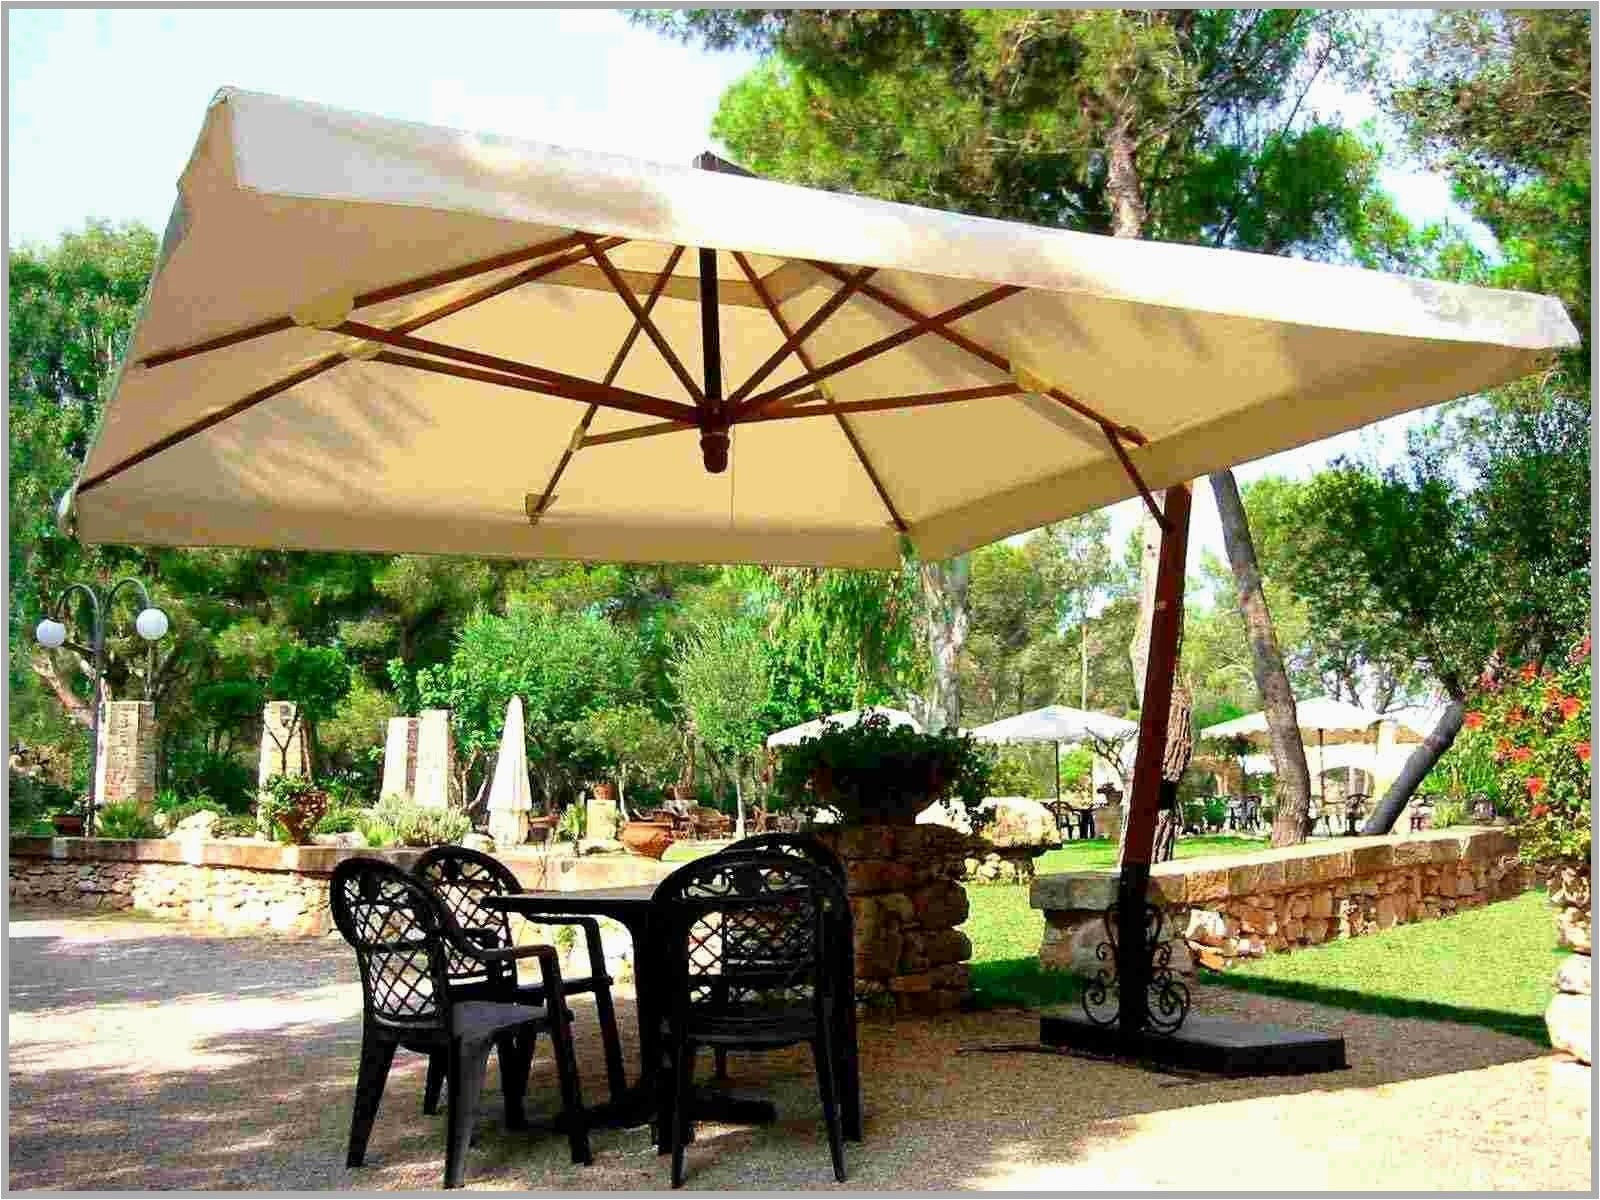 Delicieux 30 Fresh Small Patio Umbrella Design Onionskeen Regarding Dimensions 1600 X  1200